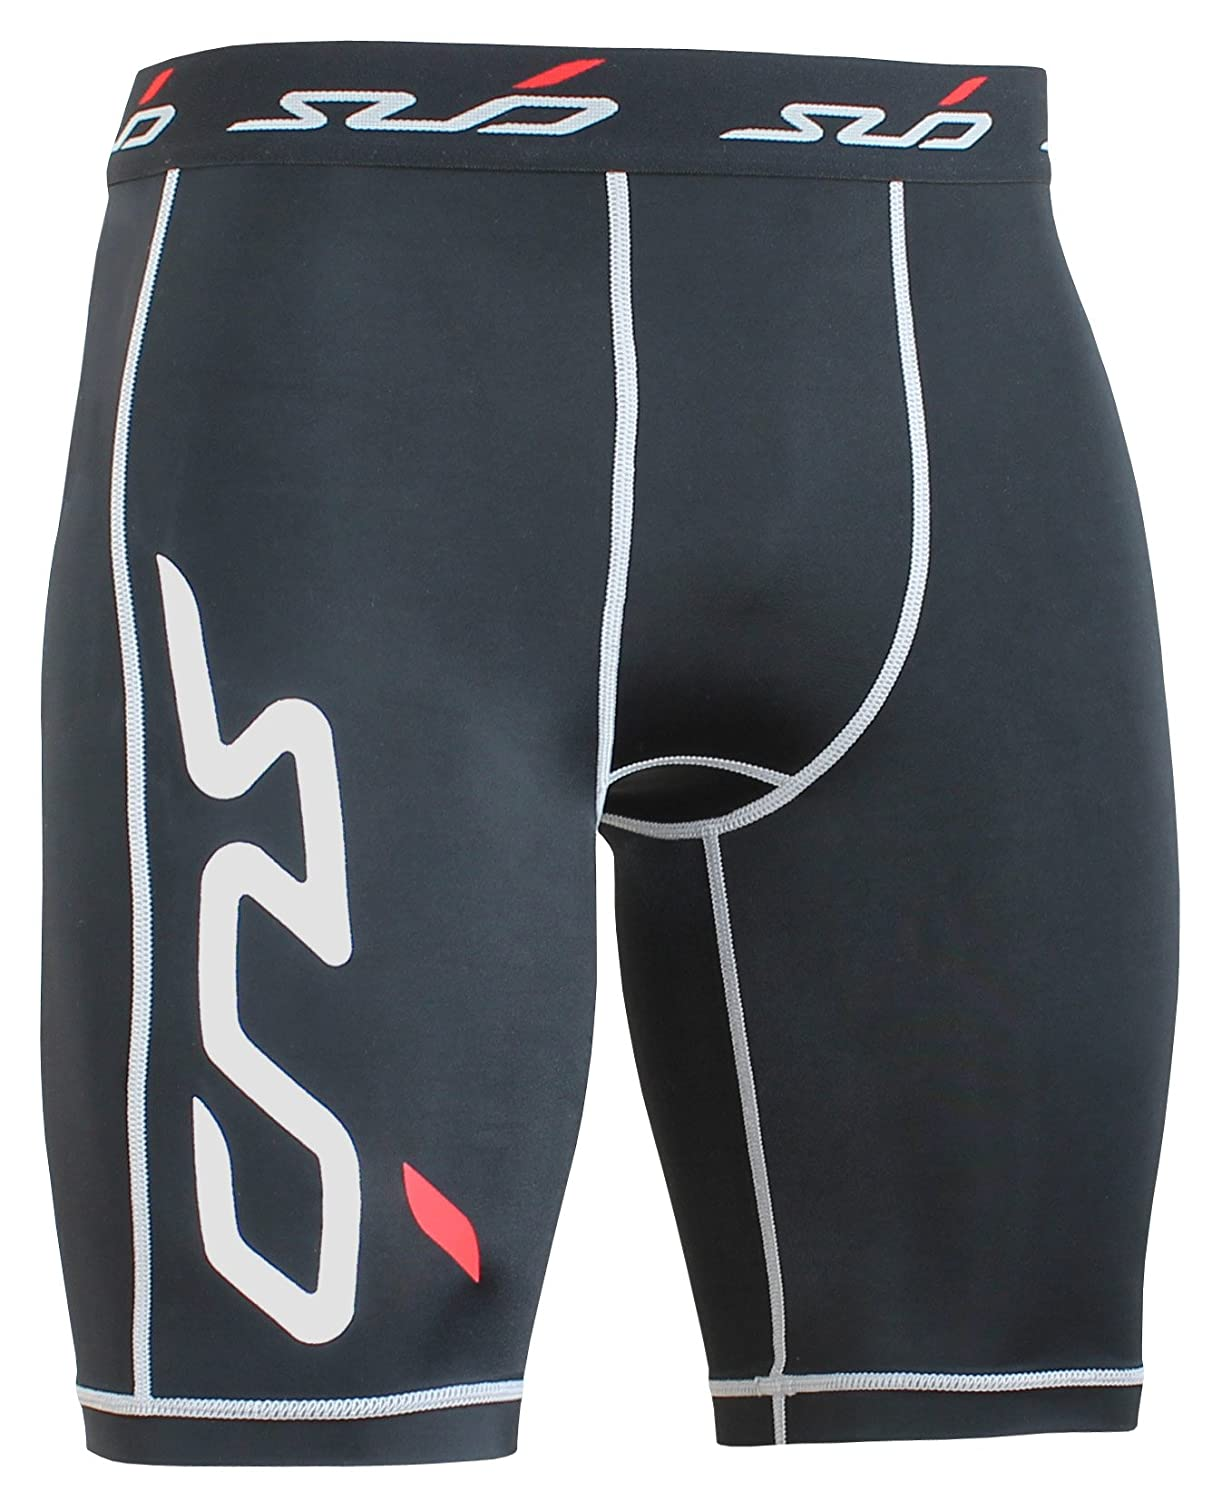 SUB Sports DUAL Kids Compression Shorts - All Season Base Layer Shorts